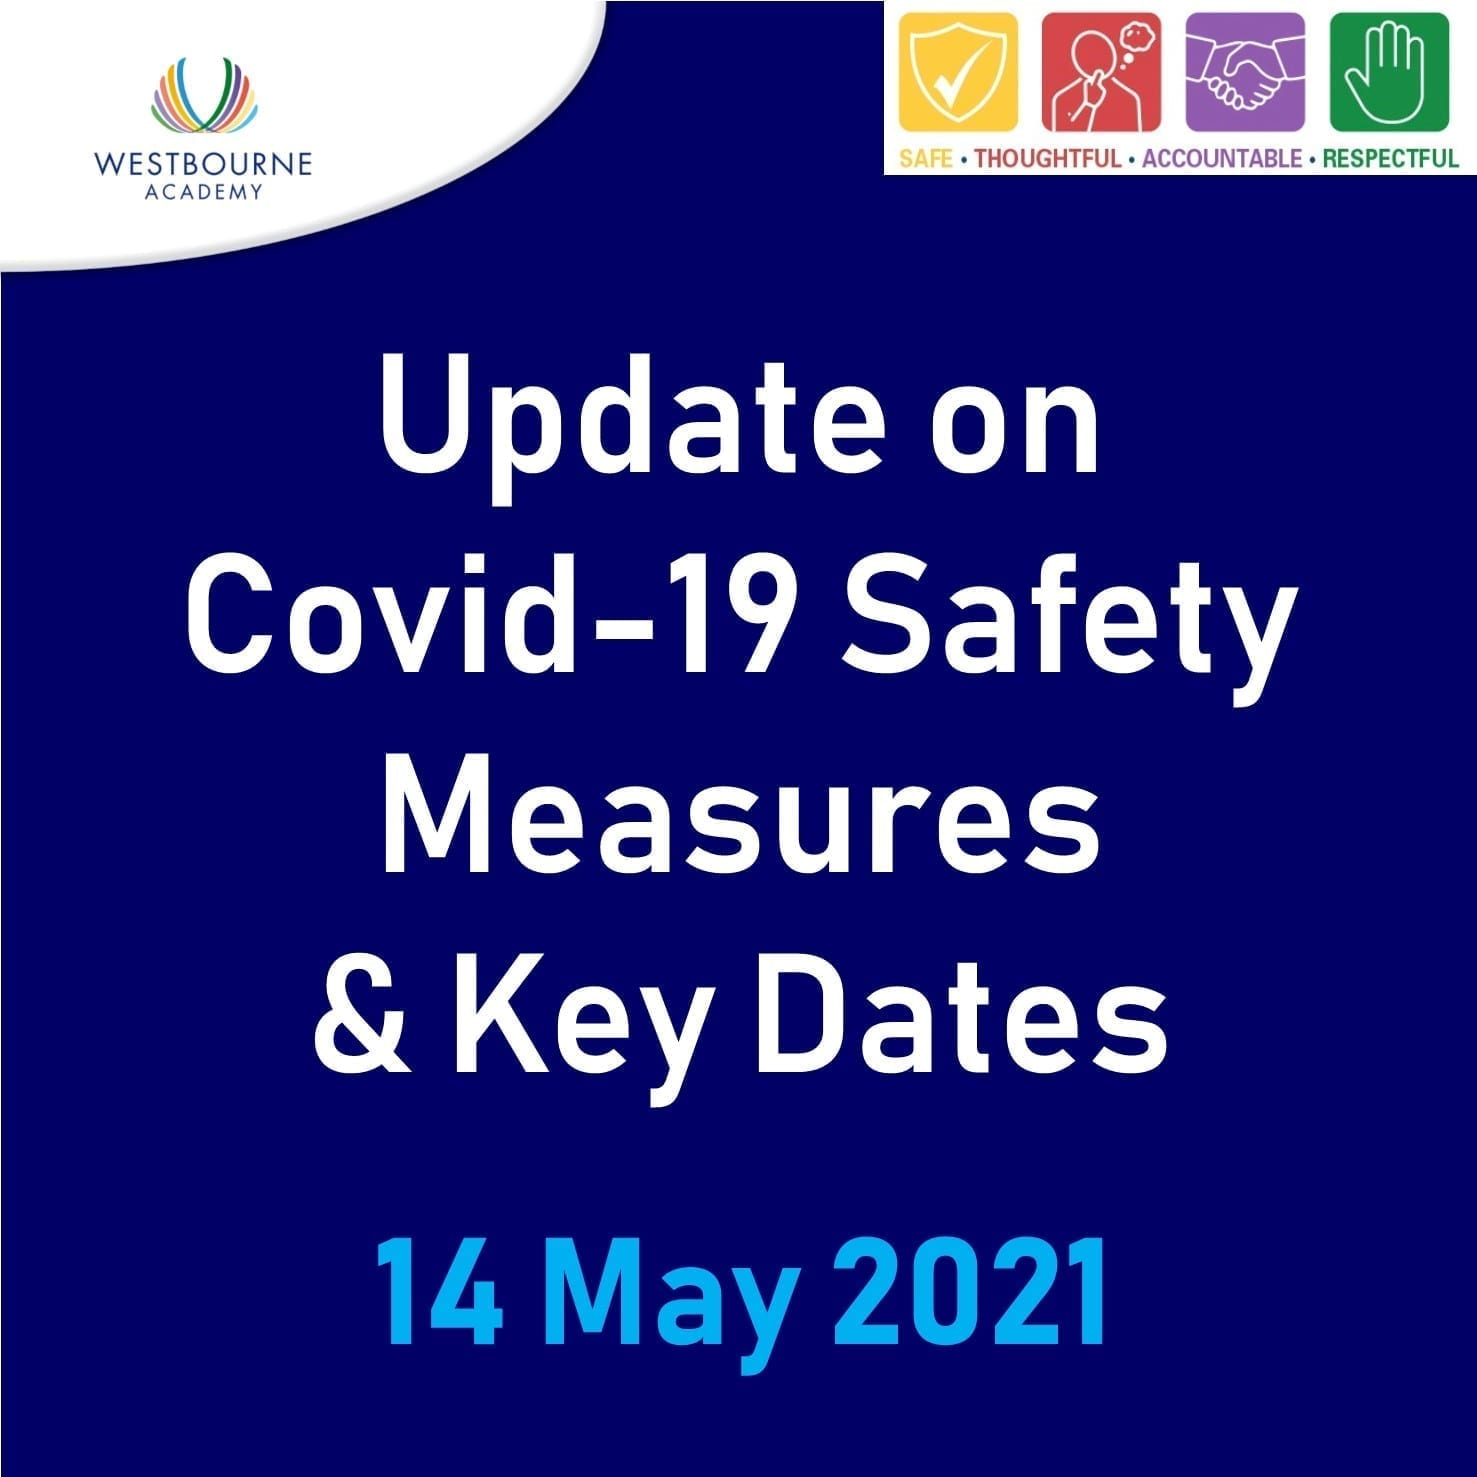 Update on Covid-19 Safety Measures & Key Dates 14/05/21